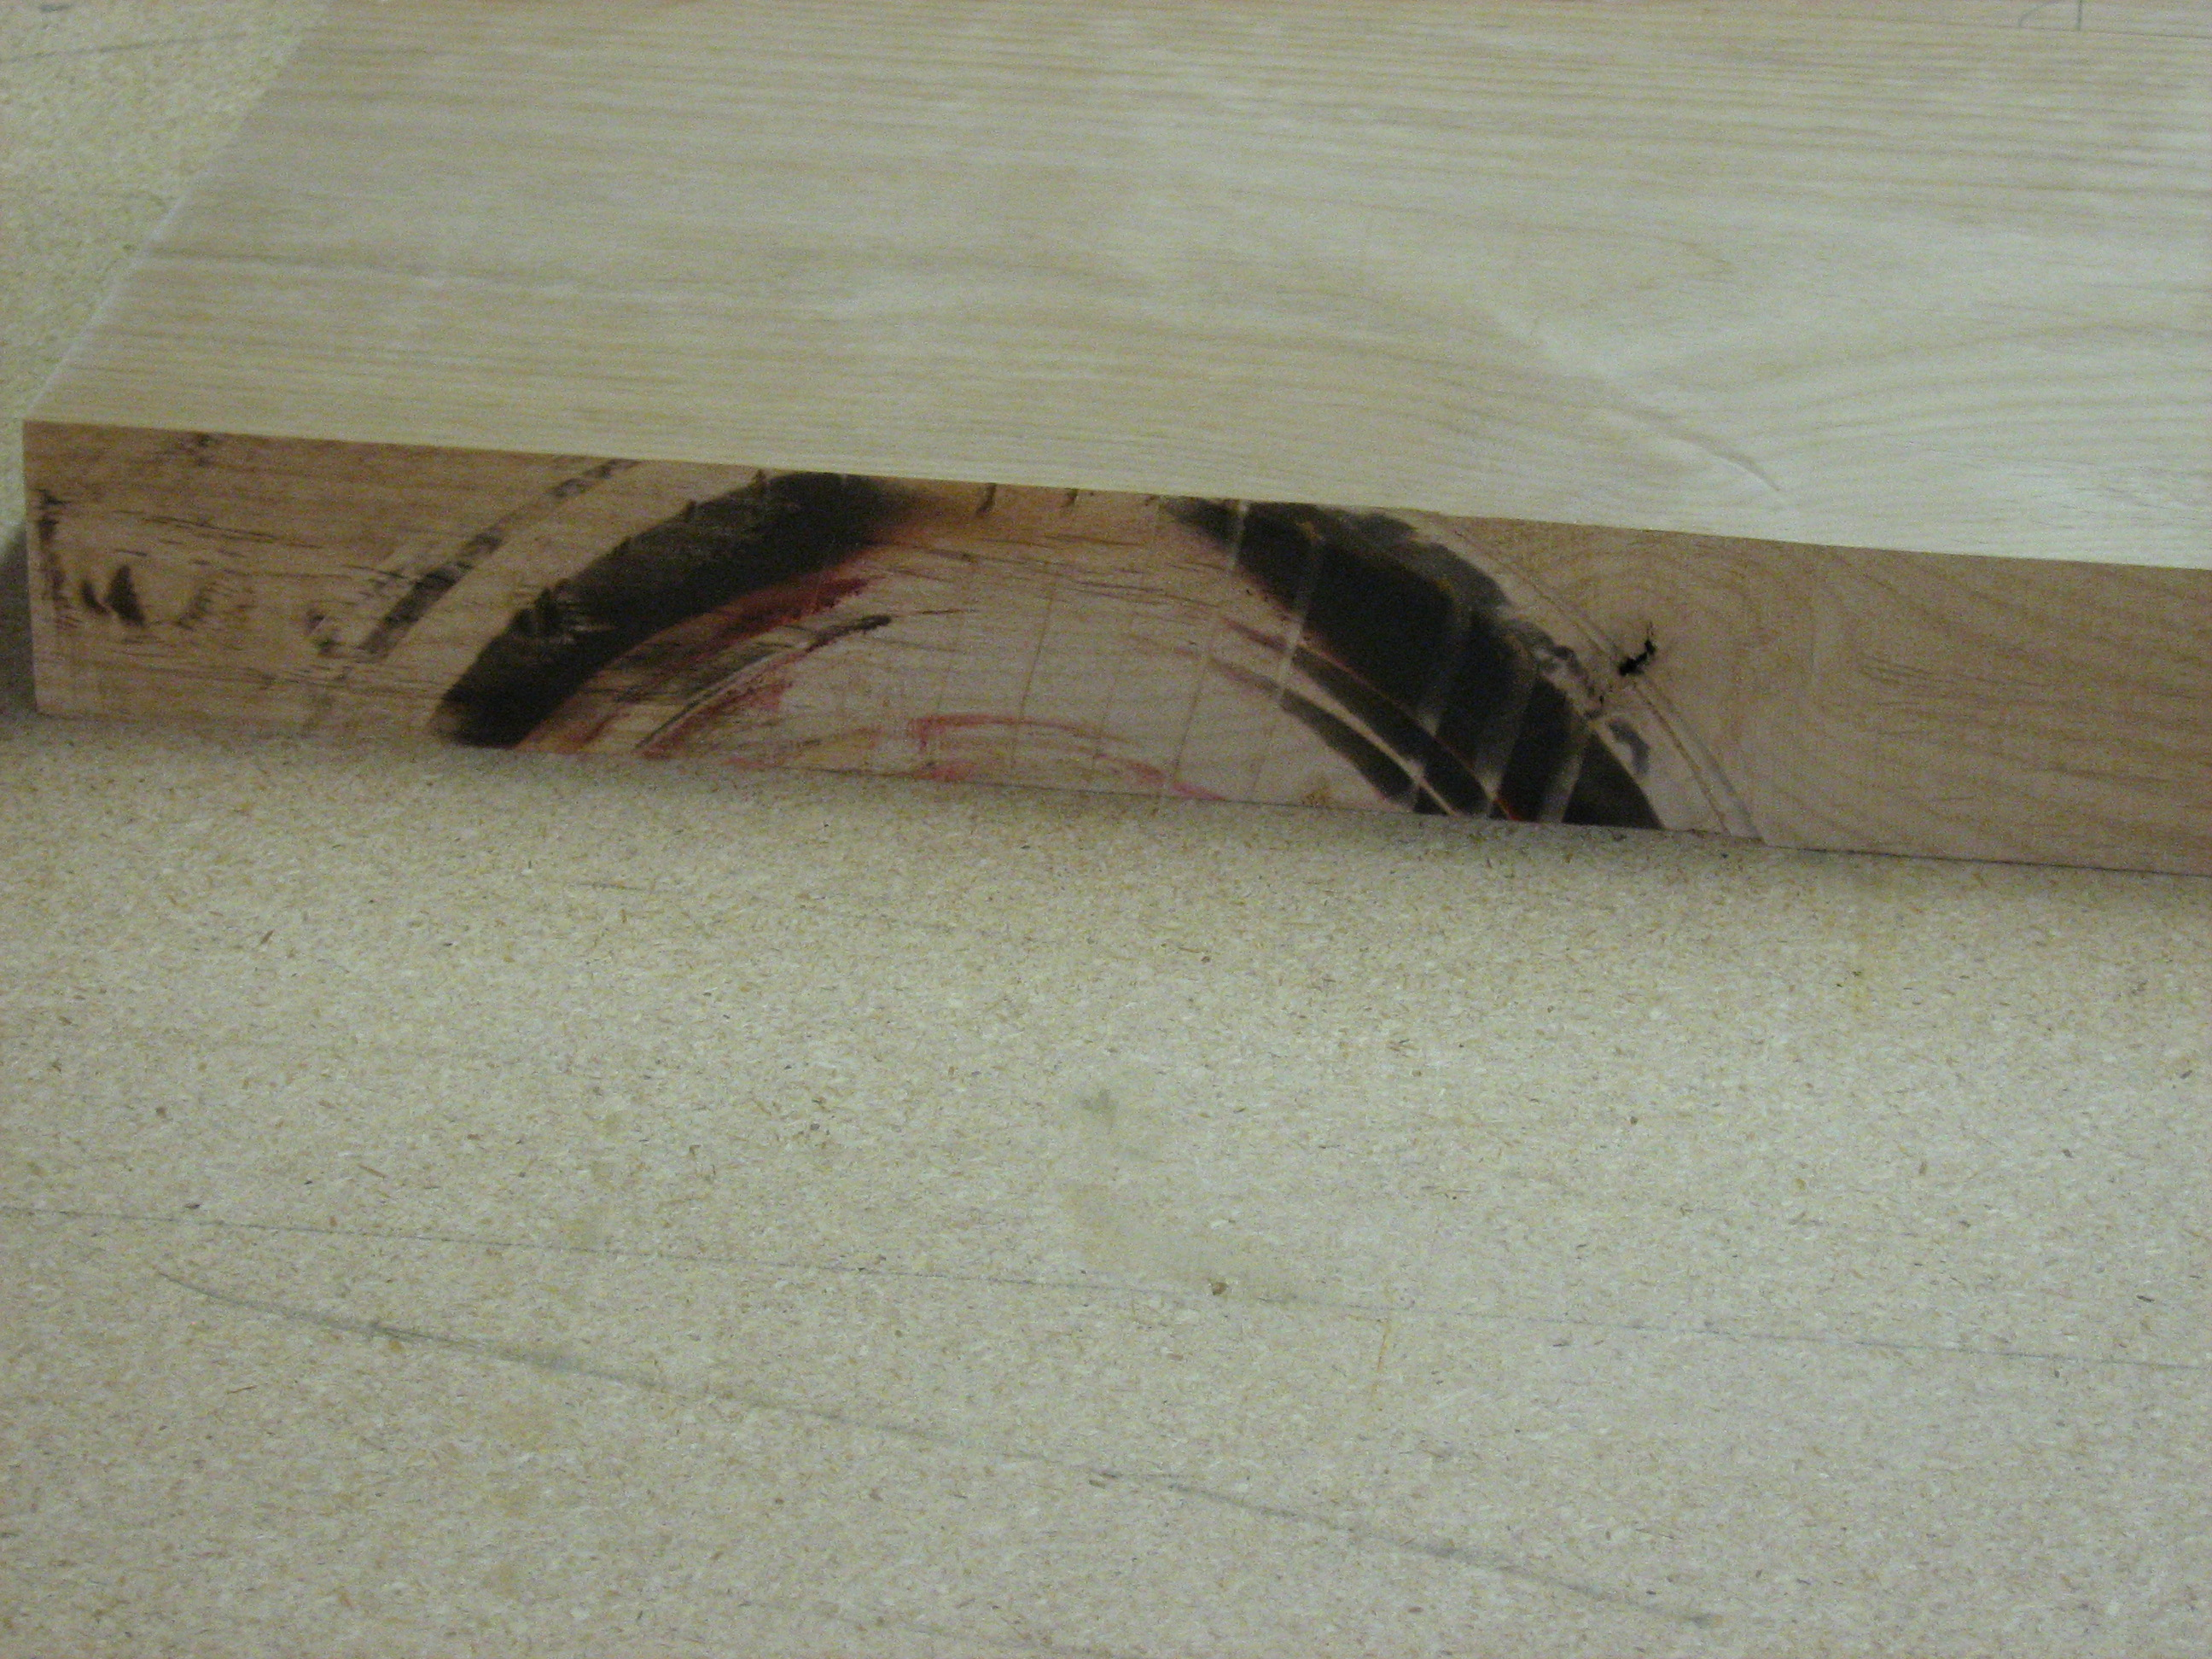 Table saw incident custom furniture and cabinetry in boise idaho as noted above i decided after this little scare that it was time to install a few safety features on our 30 year old table saw greentooth Image collections